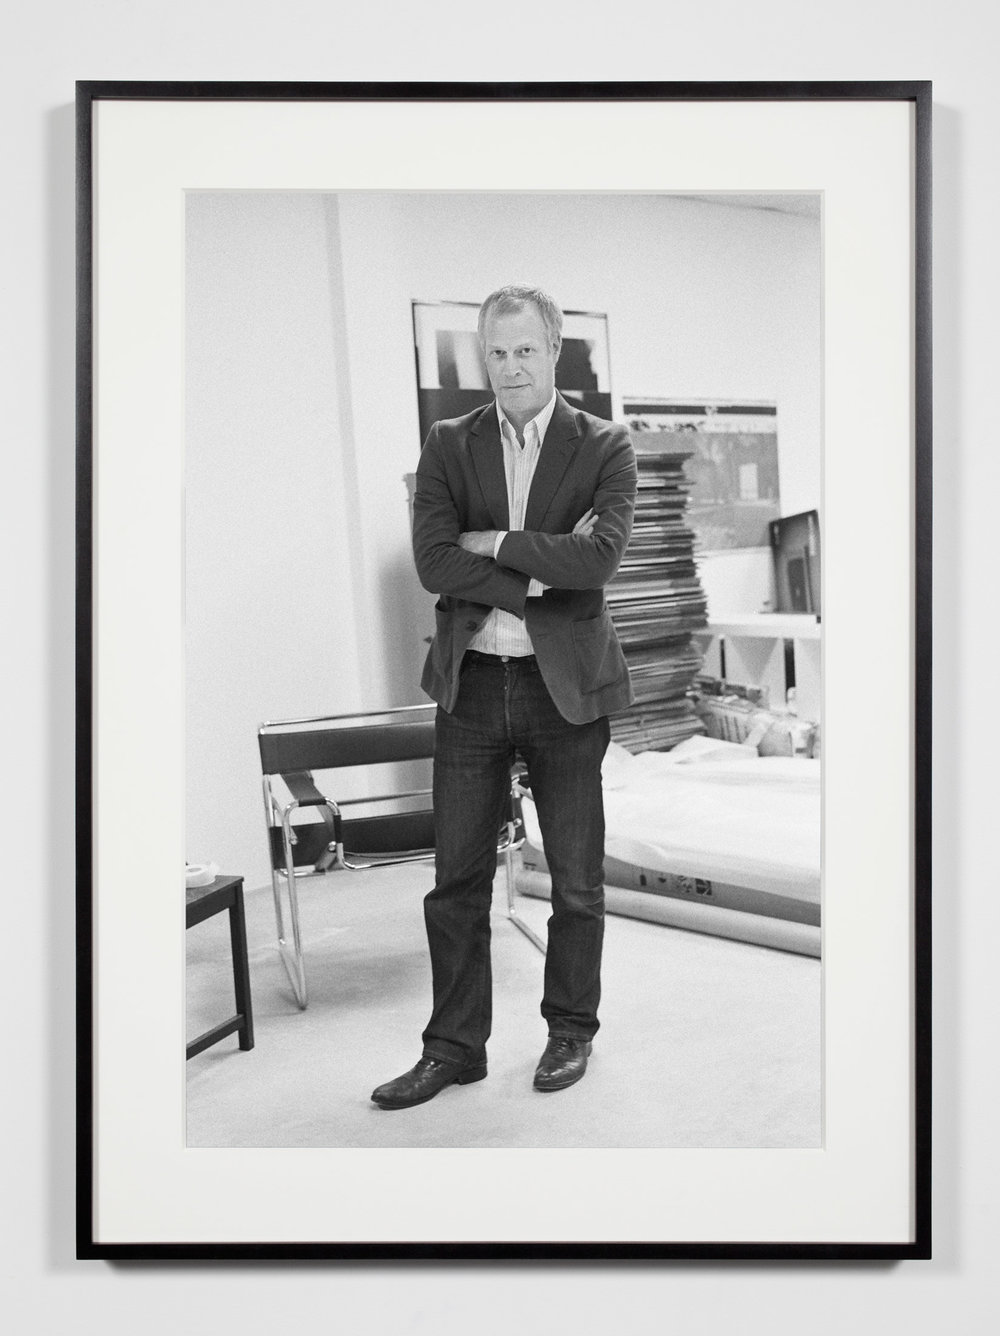 Art Fair Director, Los Angeles, California, July 20, 2008   2011  Epson Ultrachrome K3 archival ink jet print on Hahnemühle Photo Rag paper  36 3/8 x 26 3/8 inches   Industrial Portraits, 2008–    A Diagram of Forces, 2011